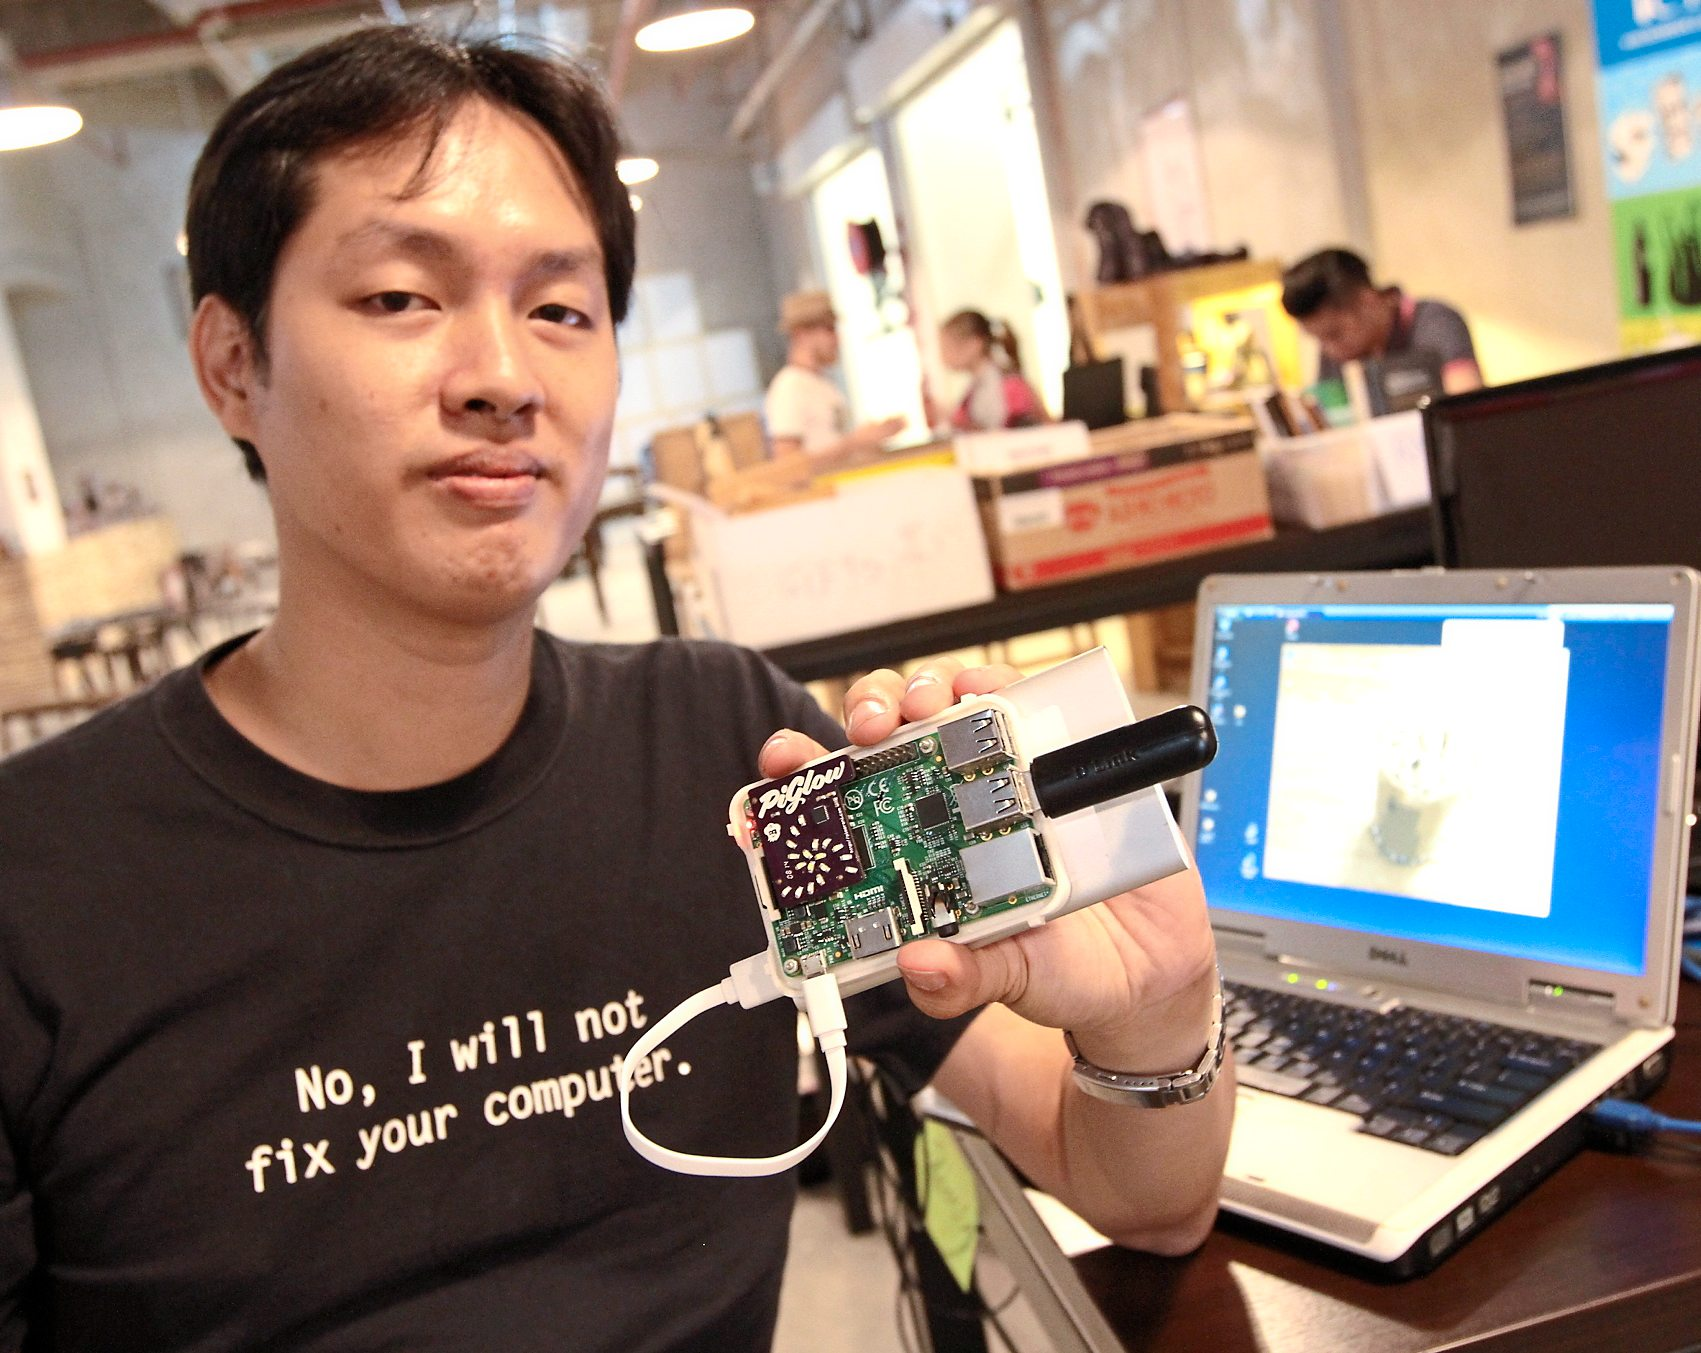 RASPBERRY PI KL: Sam Ng, the founder of  Raspberry Pi Penang, Raspberry Pi Klang Valley shows of his Raspberry Pi at the Makespace.